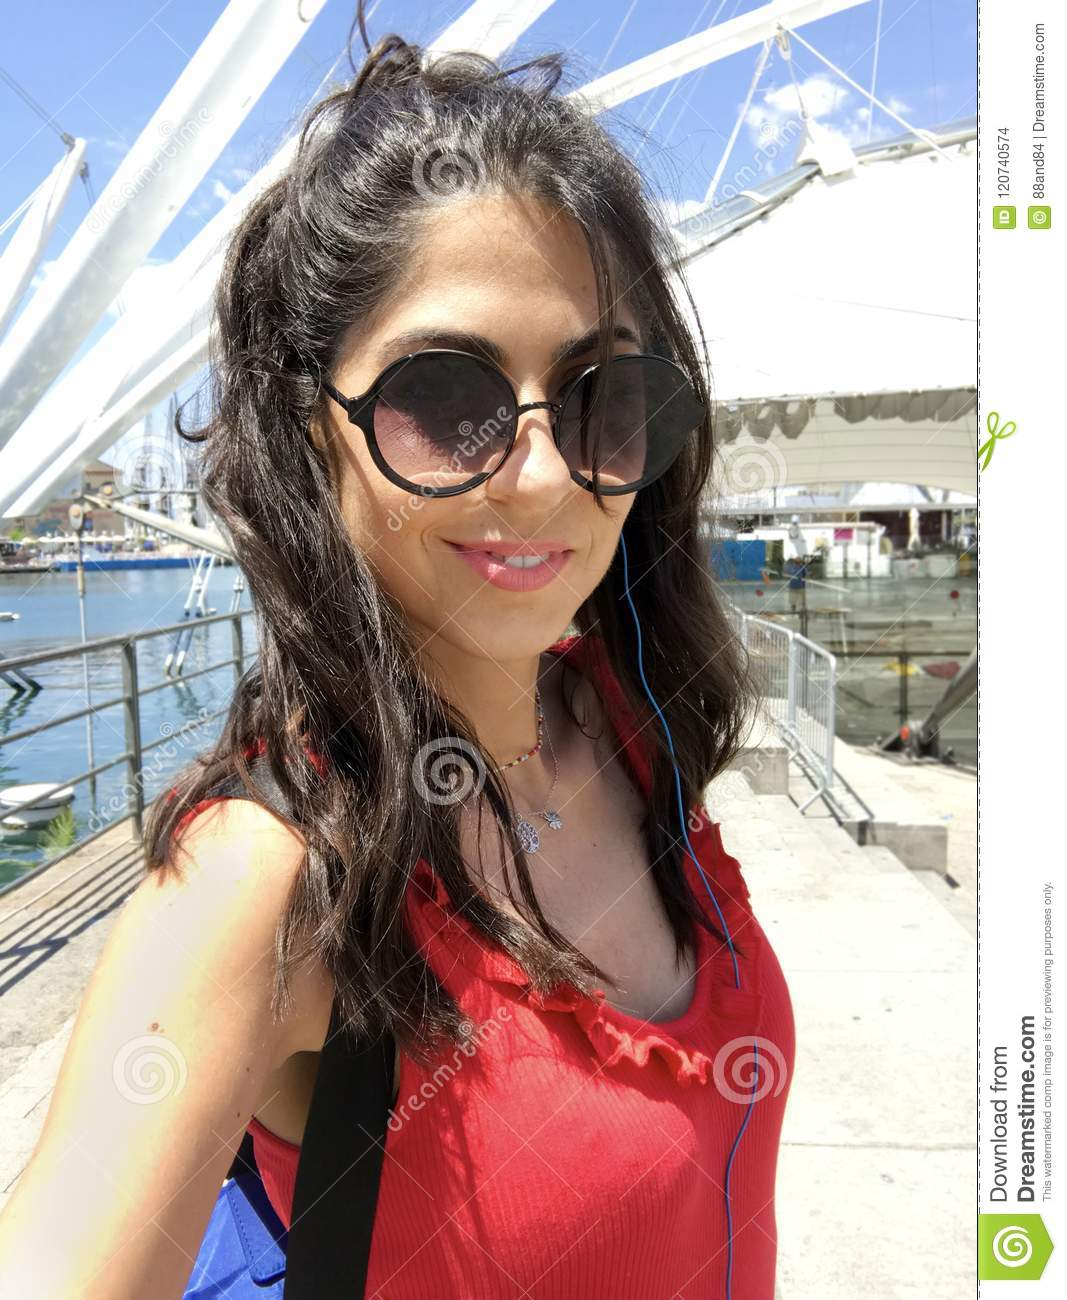 Young Happy Woman with Sunglasses Enjoying her Summer Vacation in Italy